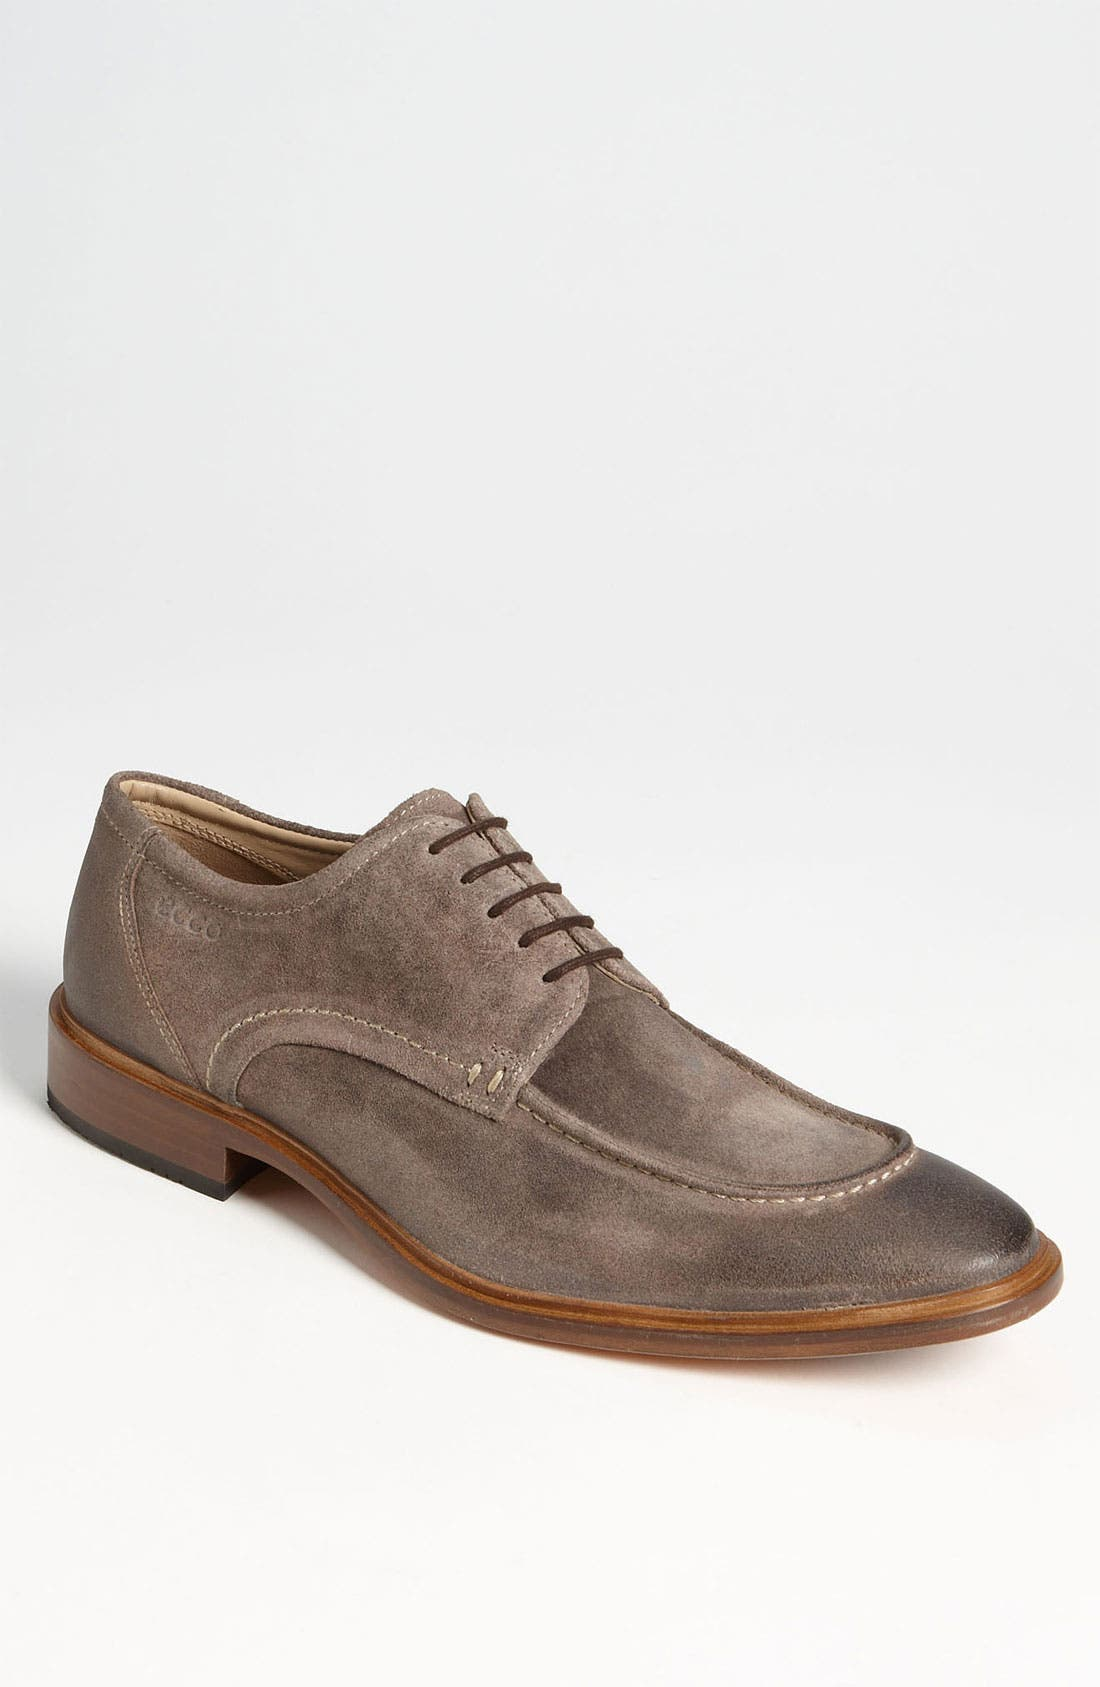 Alternate Image 1 Selected - ECCO 'Pedroso' Apron Toe Derby